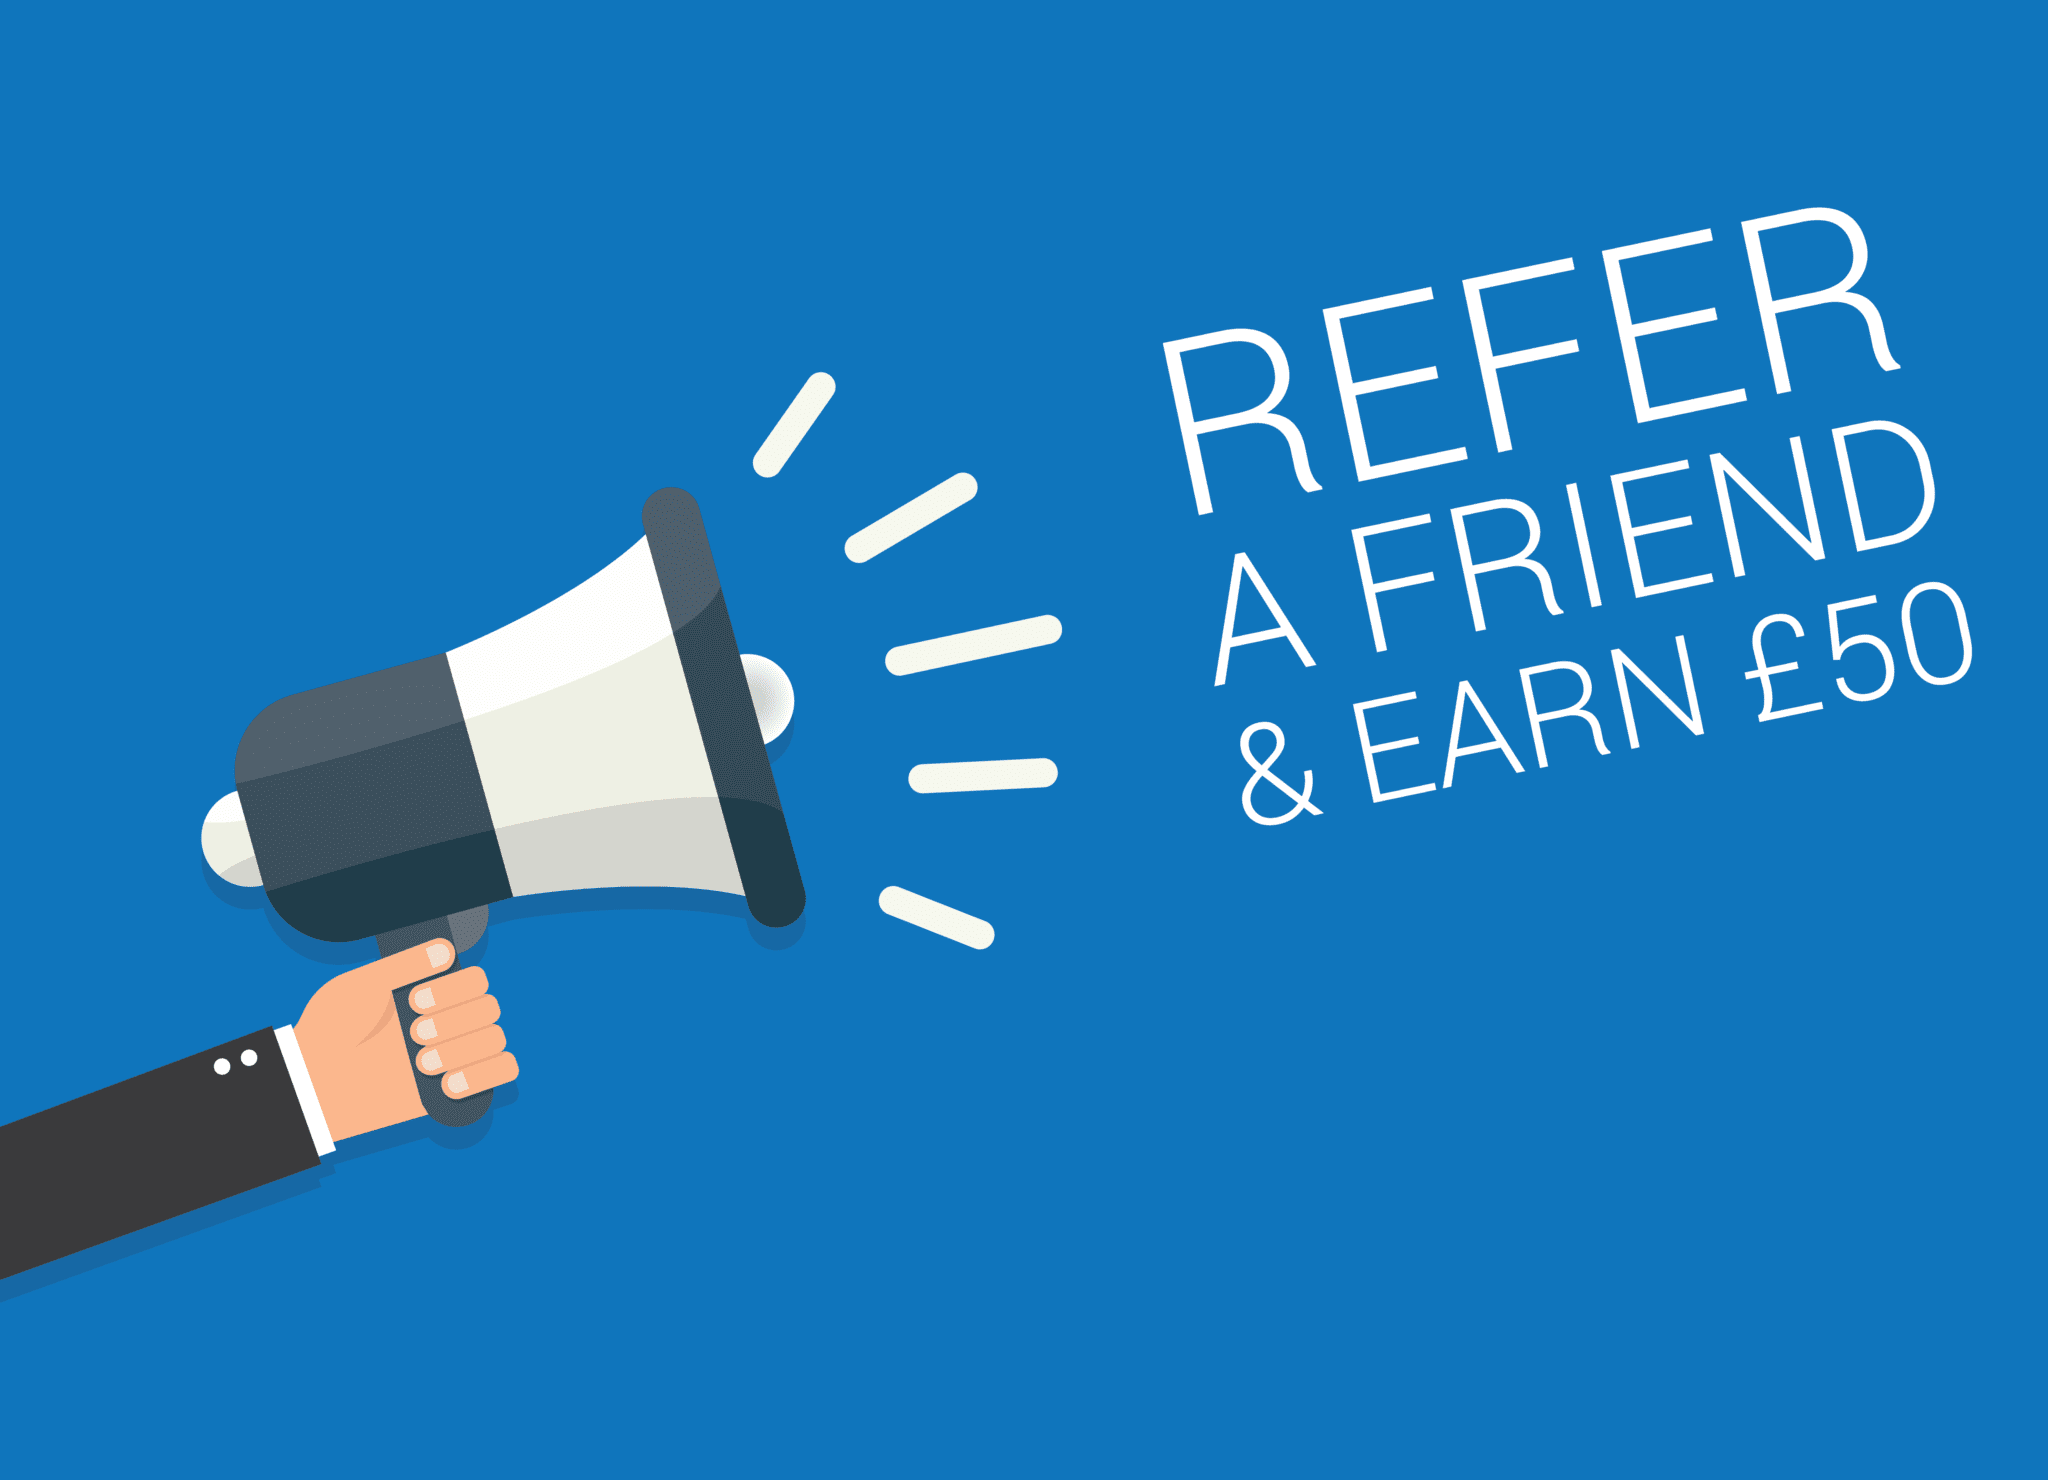 refer-a-friend-earn-up-to-50-each.png